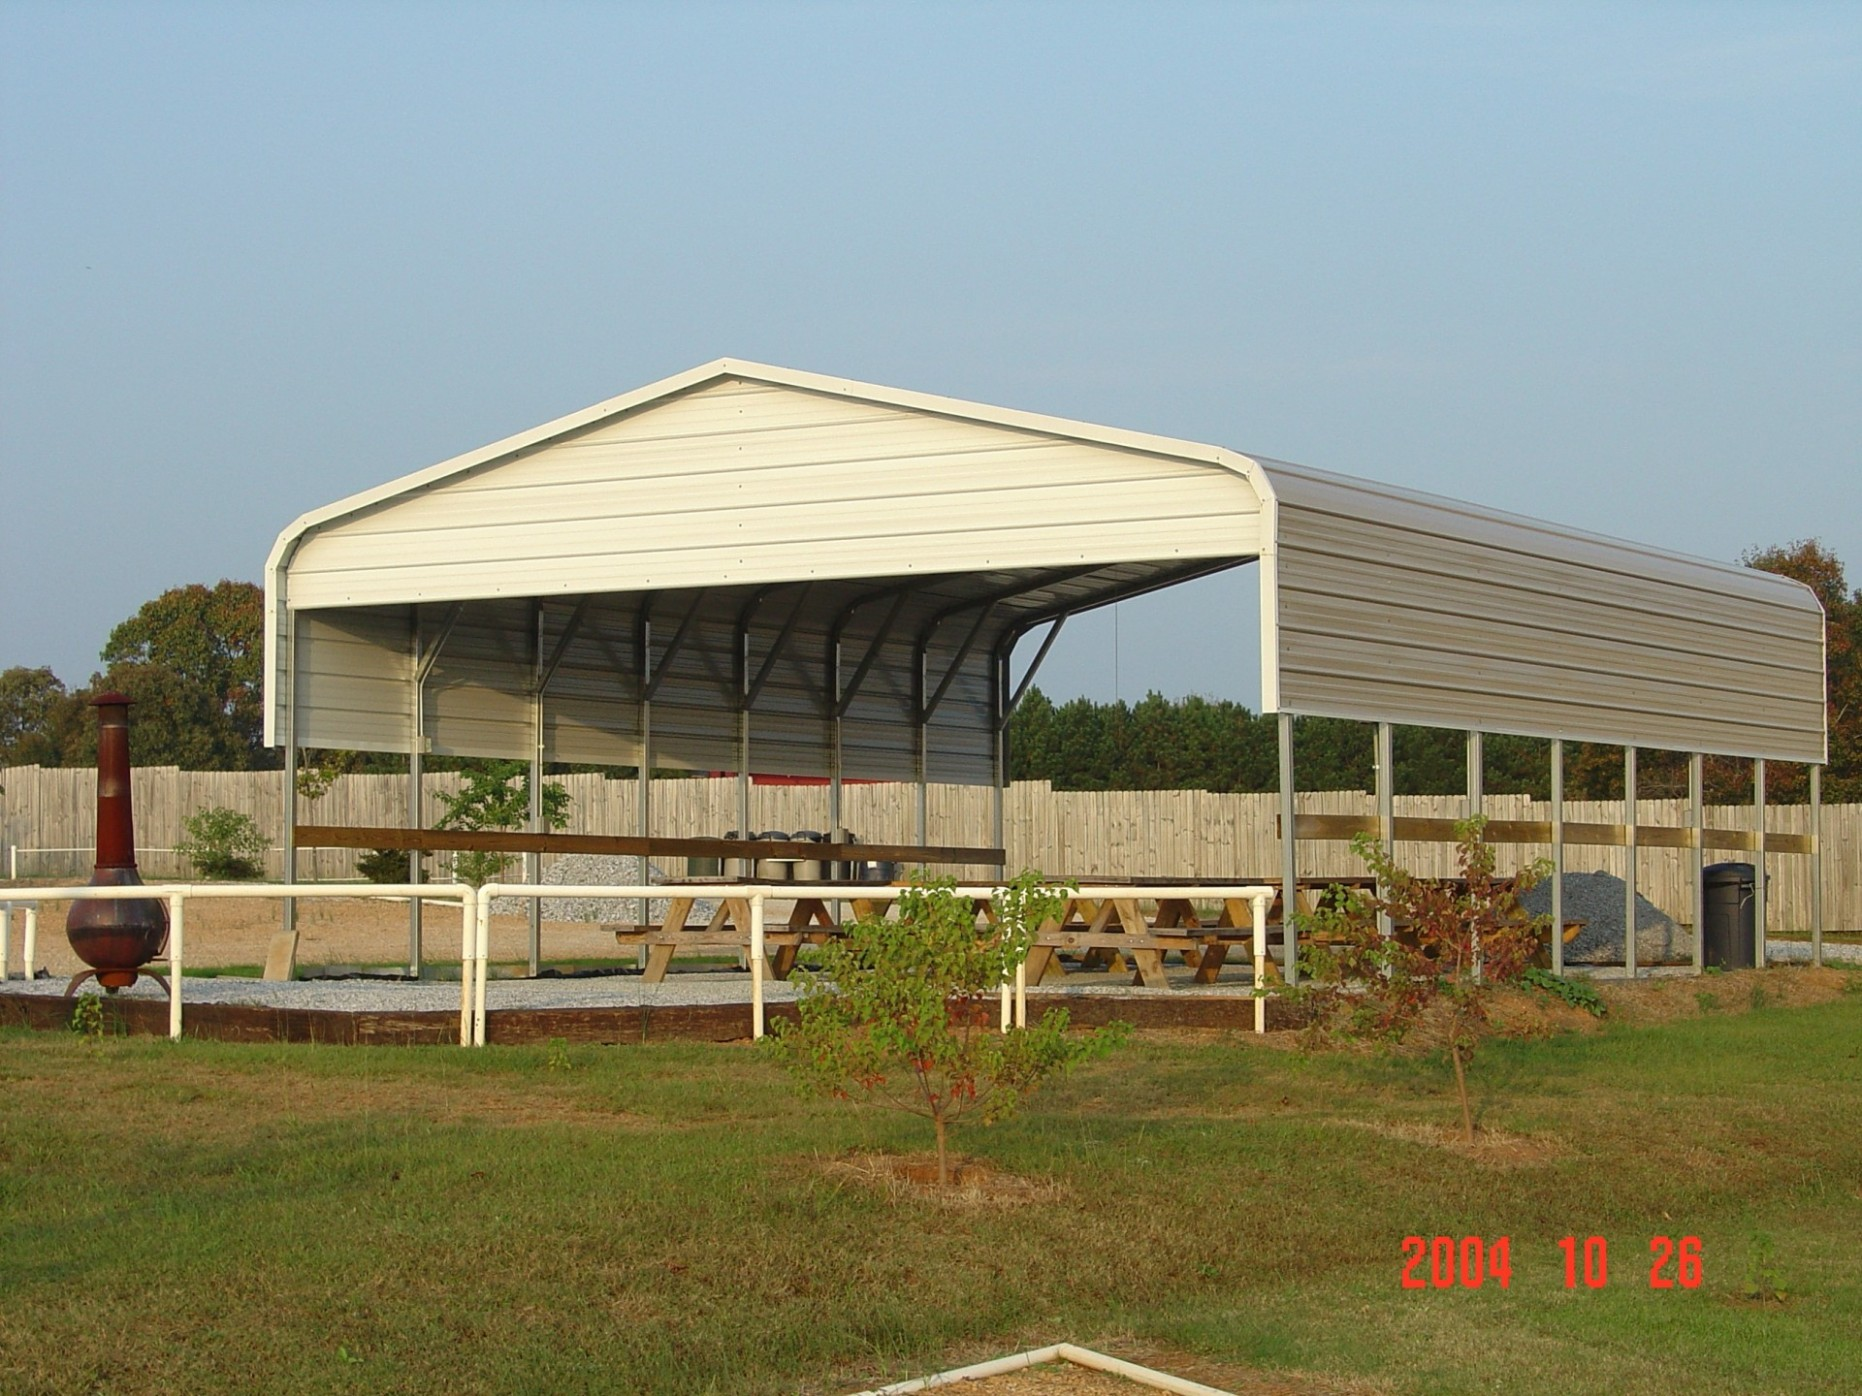 The Seven Reasons Tourists Love Portable Metal Carport For Sale | portable metal carport for sale